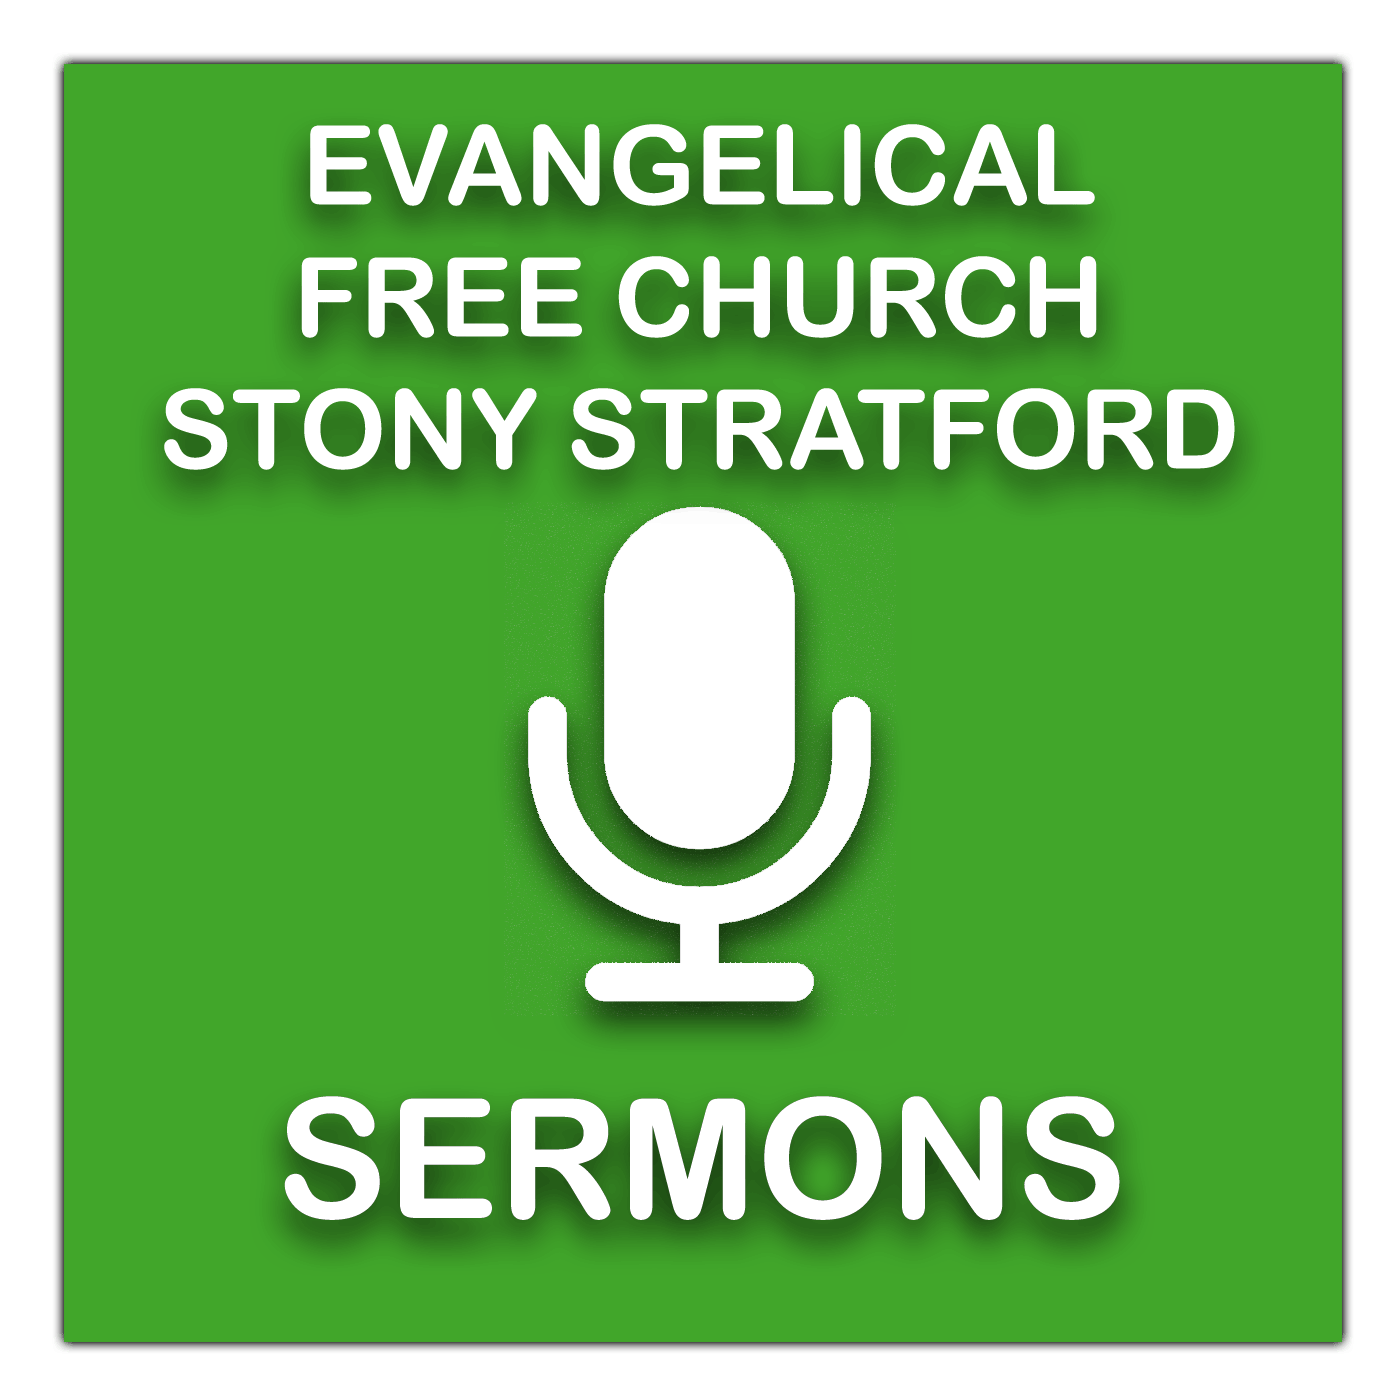 Evangelical Free Church Stony Stratford | Evangelical, Church, Stony